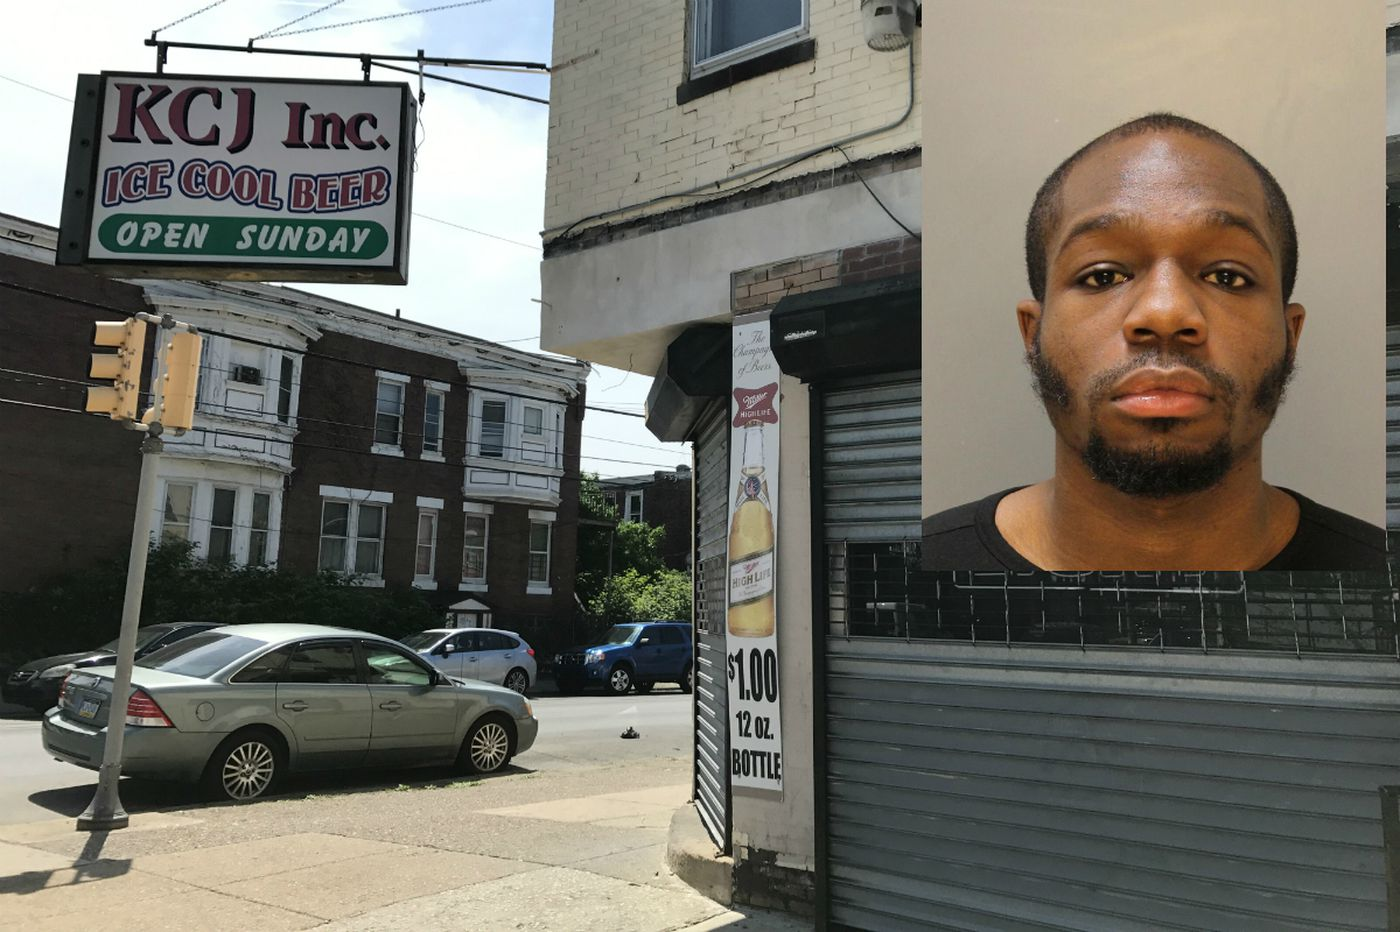 West Philly beer deli owner stunned by plea deal for gunman who shot him